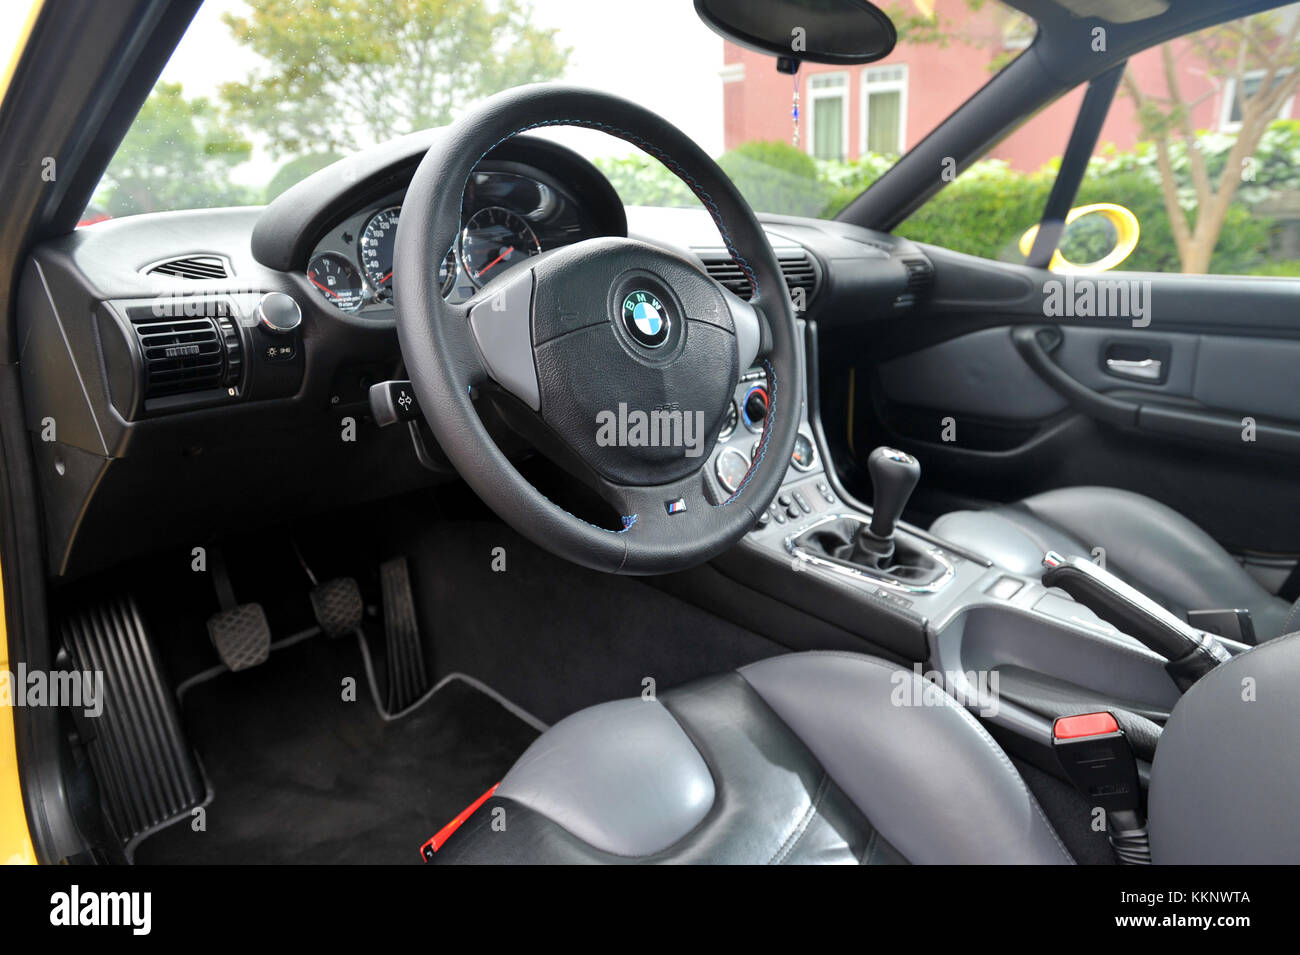 Bmw Z3m Interior Stock Photo Alamy